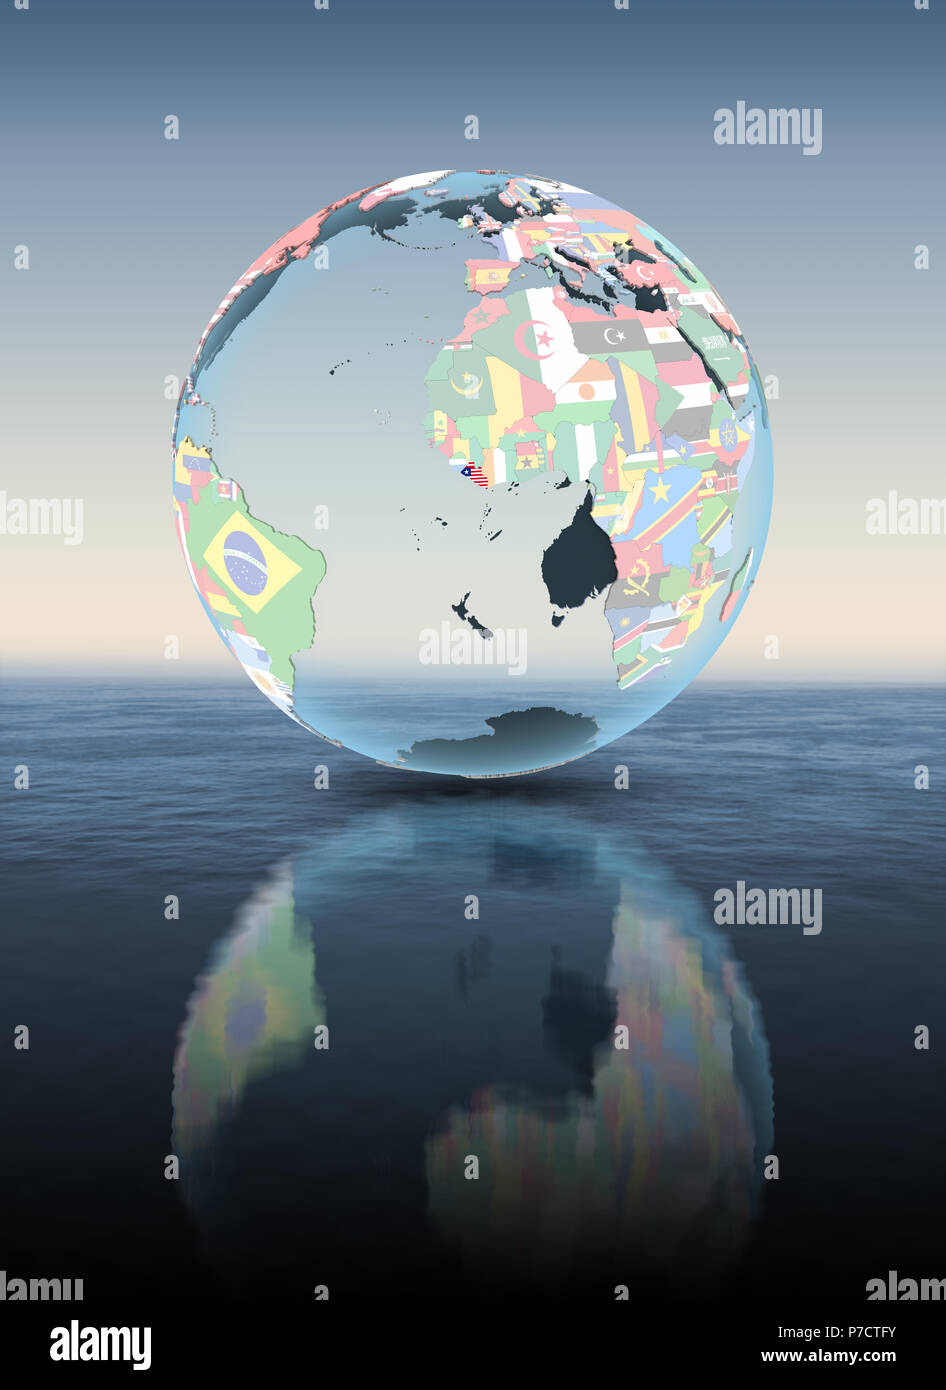 Liberia on political globe floating above water. 3D illustration. - Stock Image